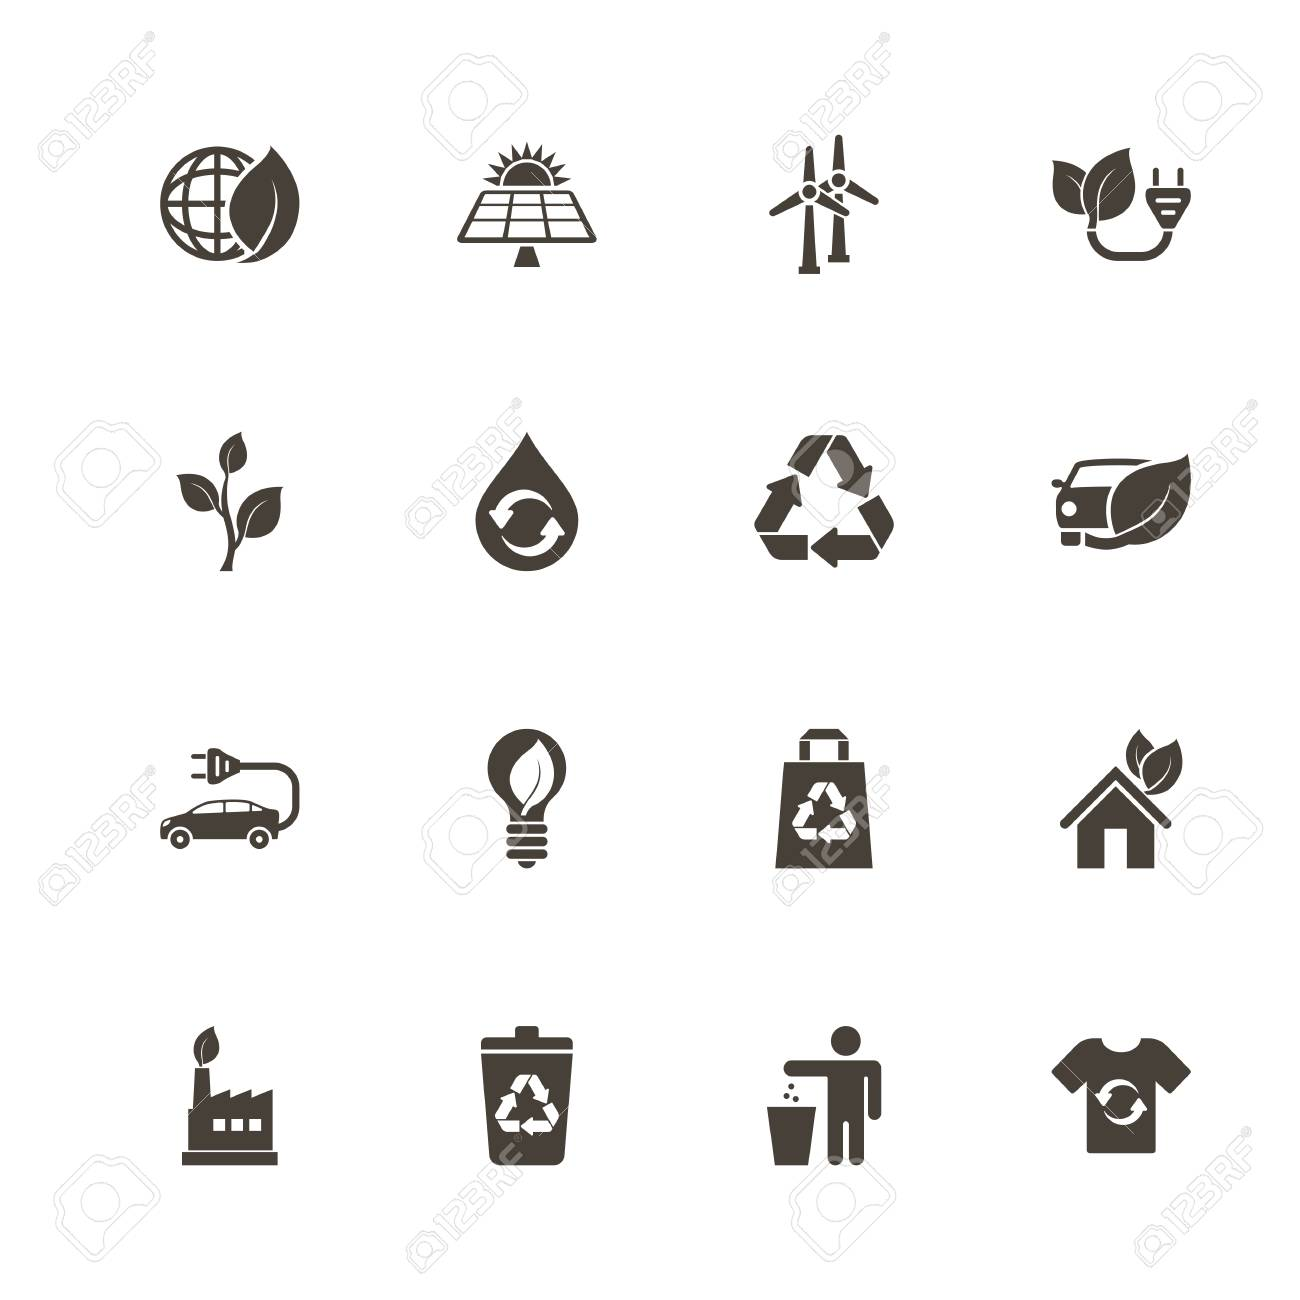 Ecological icons. Perfect black pictograph on white background. Flat simple vector icon. - 94225716